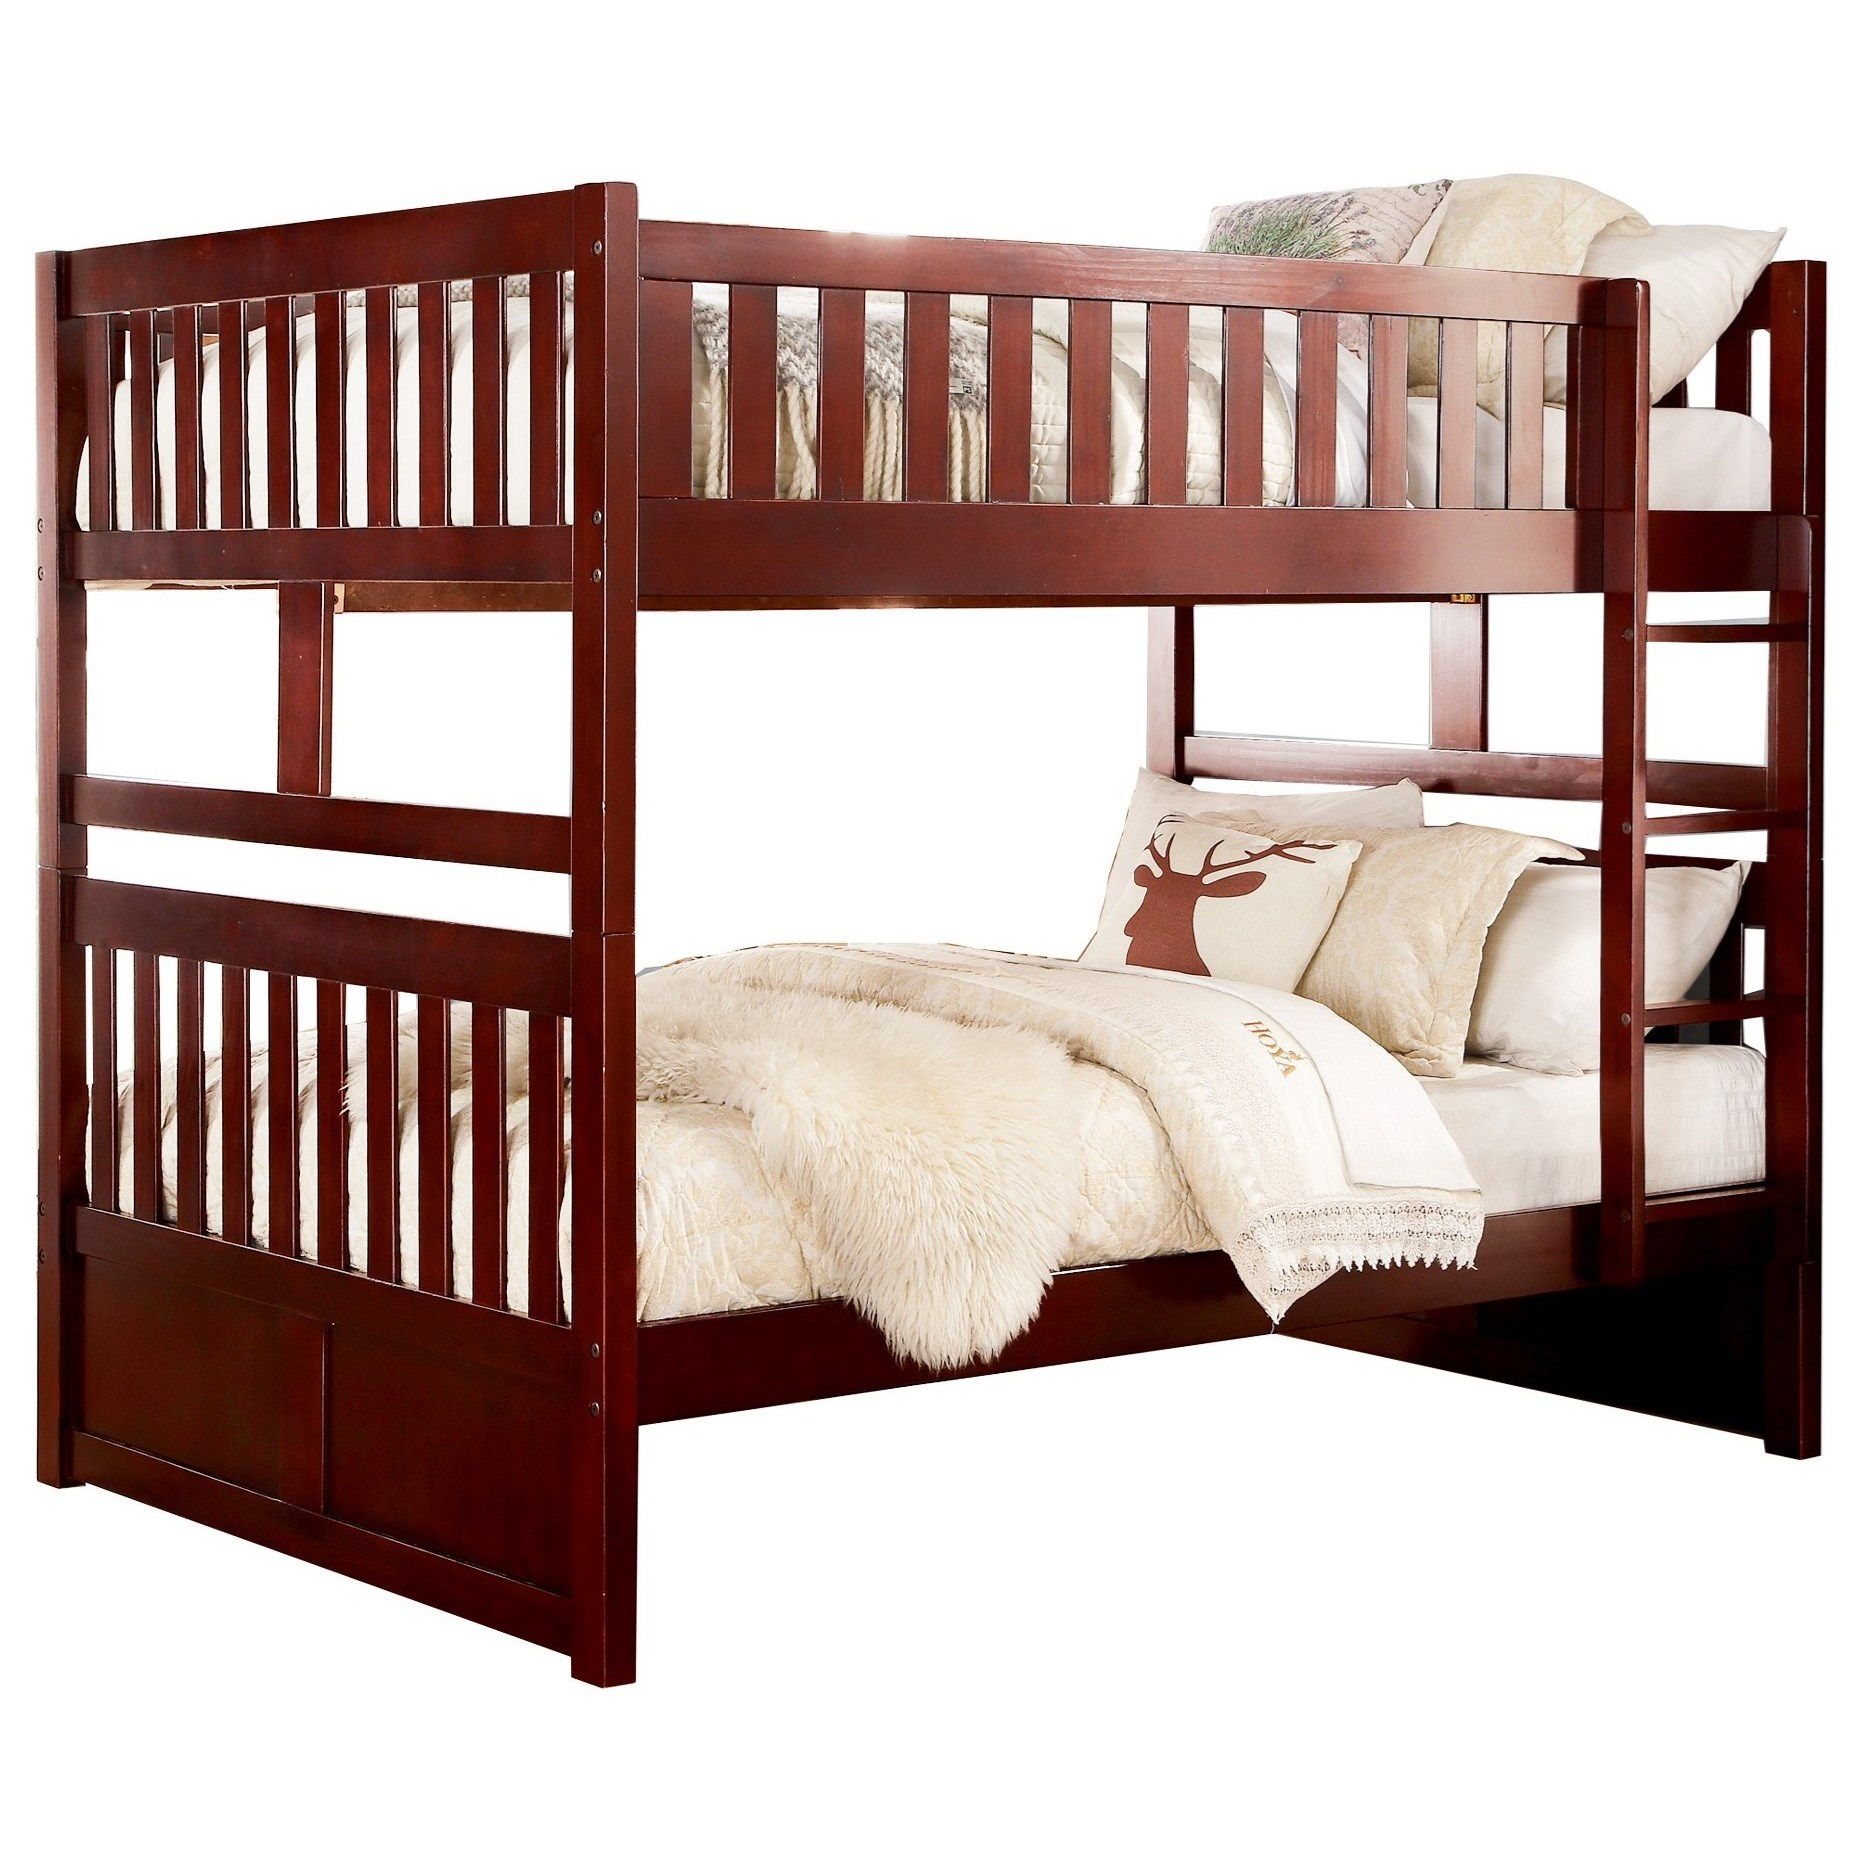 Rowe Full Over Full Bunk Bed by Homelegance at Simply Home by Lindy's